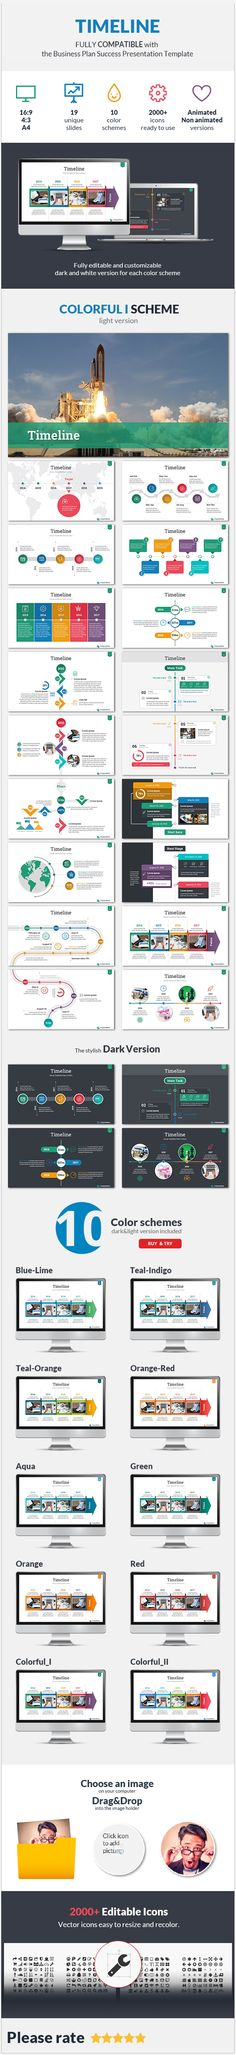 Timeline Success PowerPoint Presentation Template — Powerpoint PPTX #communication #infographic • Download ➝ https://graphicriver.net/item/timeline-success-powerpoint-presentation-template/19073585?ref=pxcr